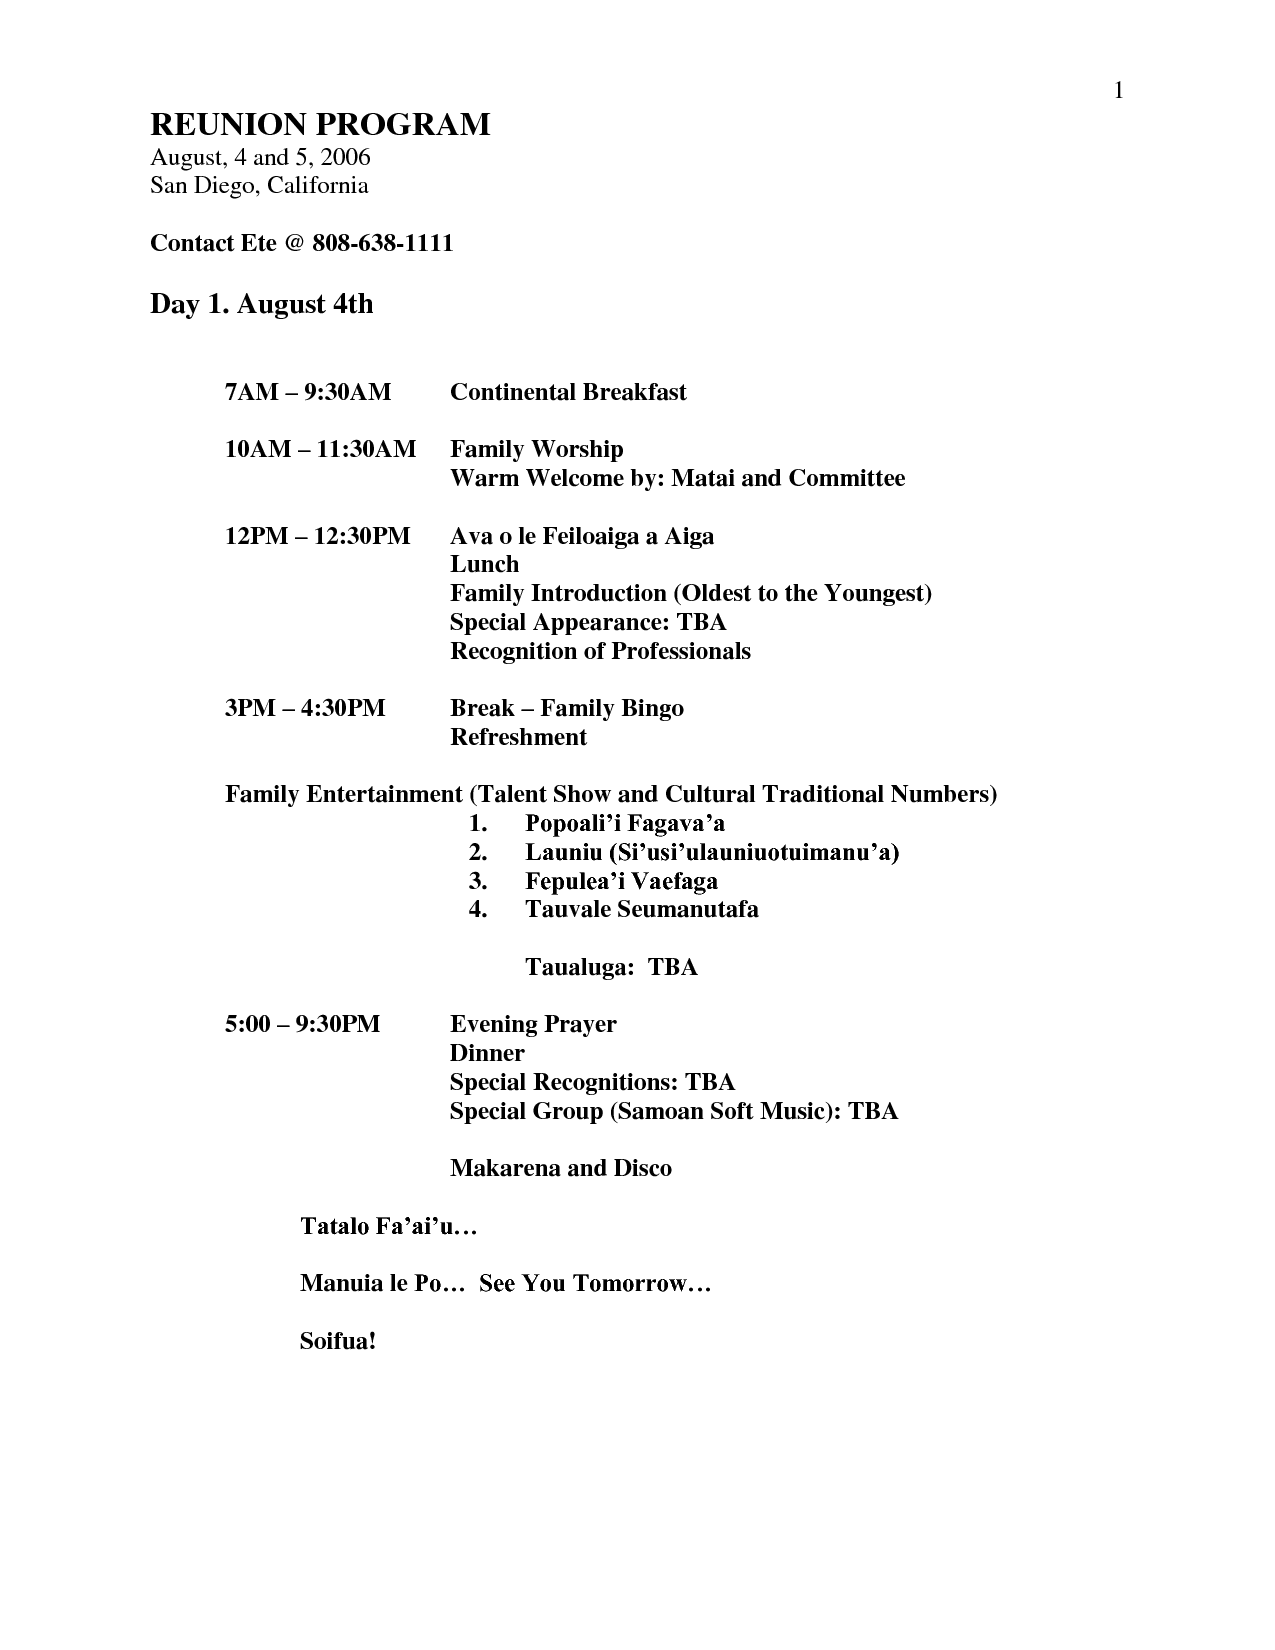 Family Reunion Ideas Class Reunion Program Template Class Reunion